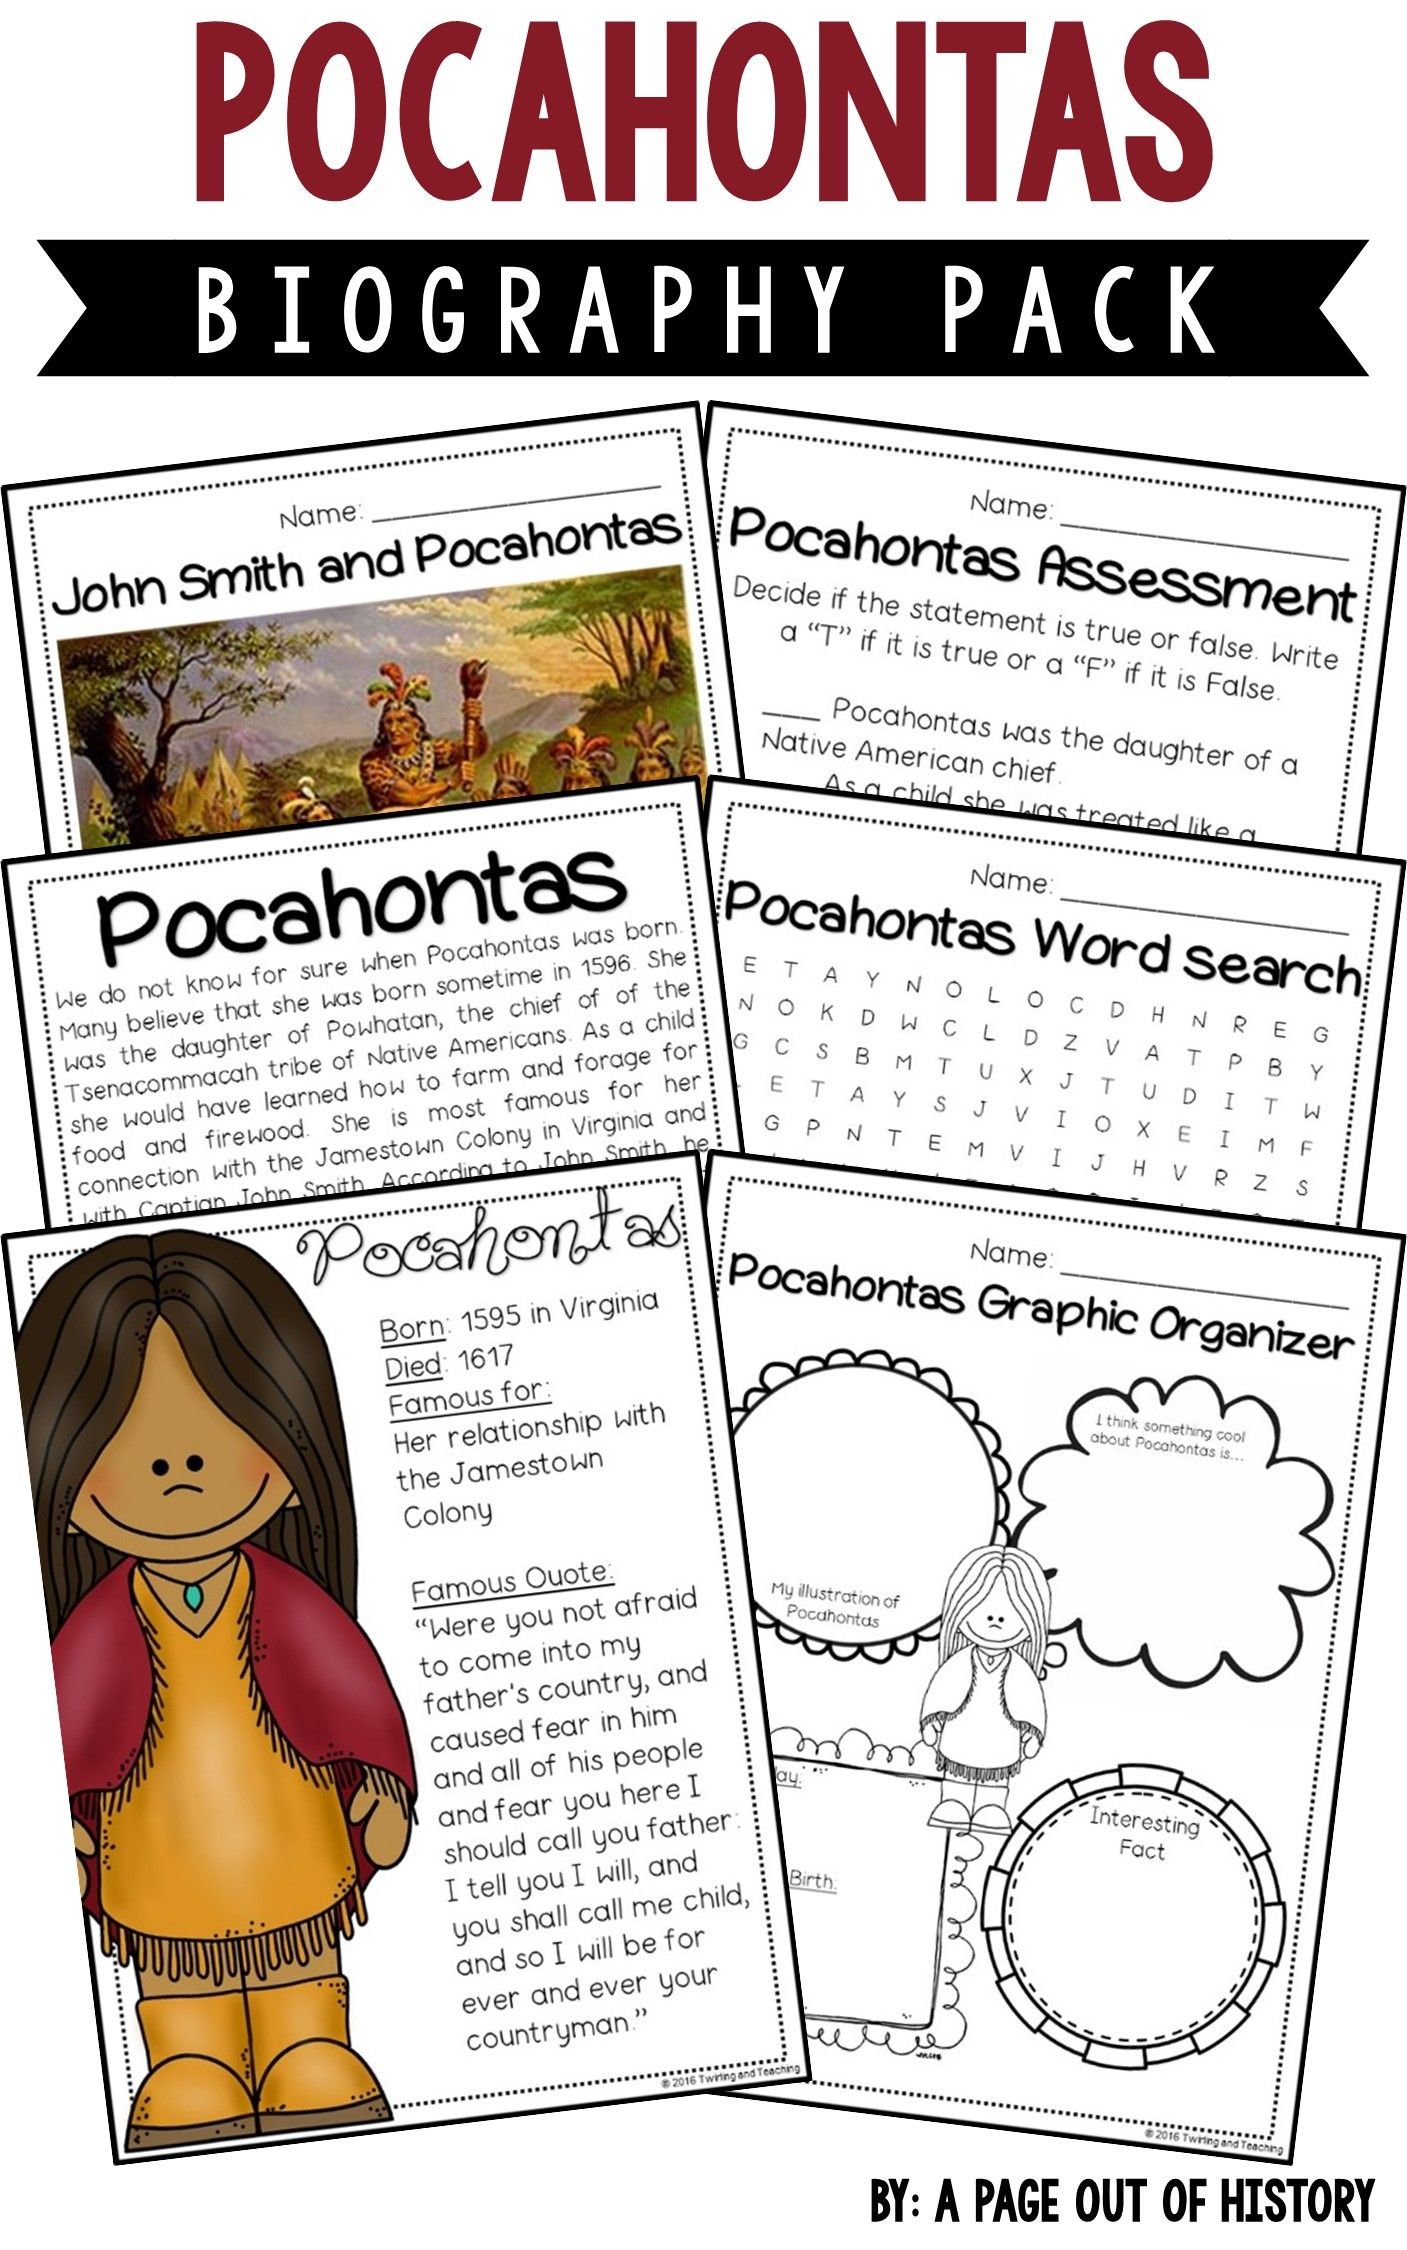 This Free Pocahontas Biography Pack Is A Great Addition To Your Women S History Month Social St Kindergarten Social Studies Pocahontas Biography Social Studies [ 2250 x 1407 Pixel ]